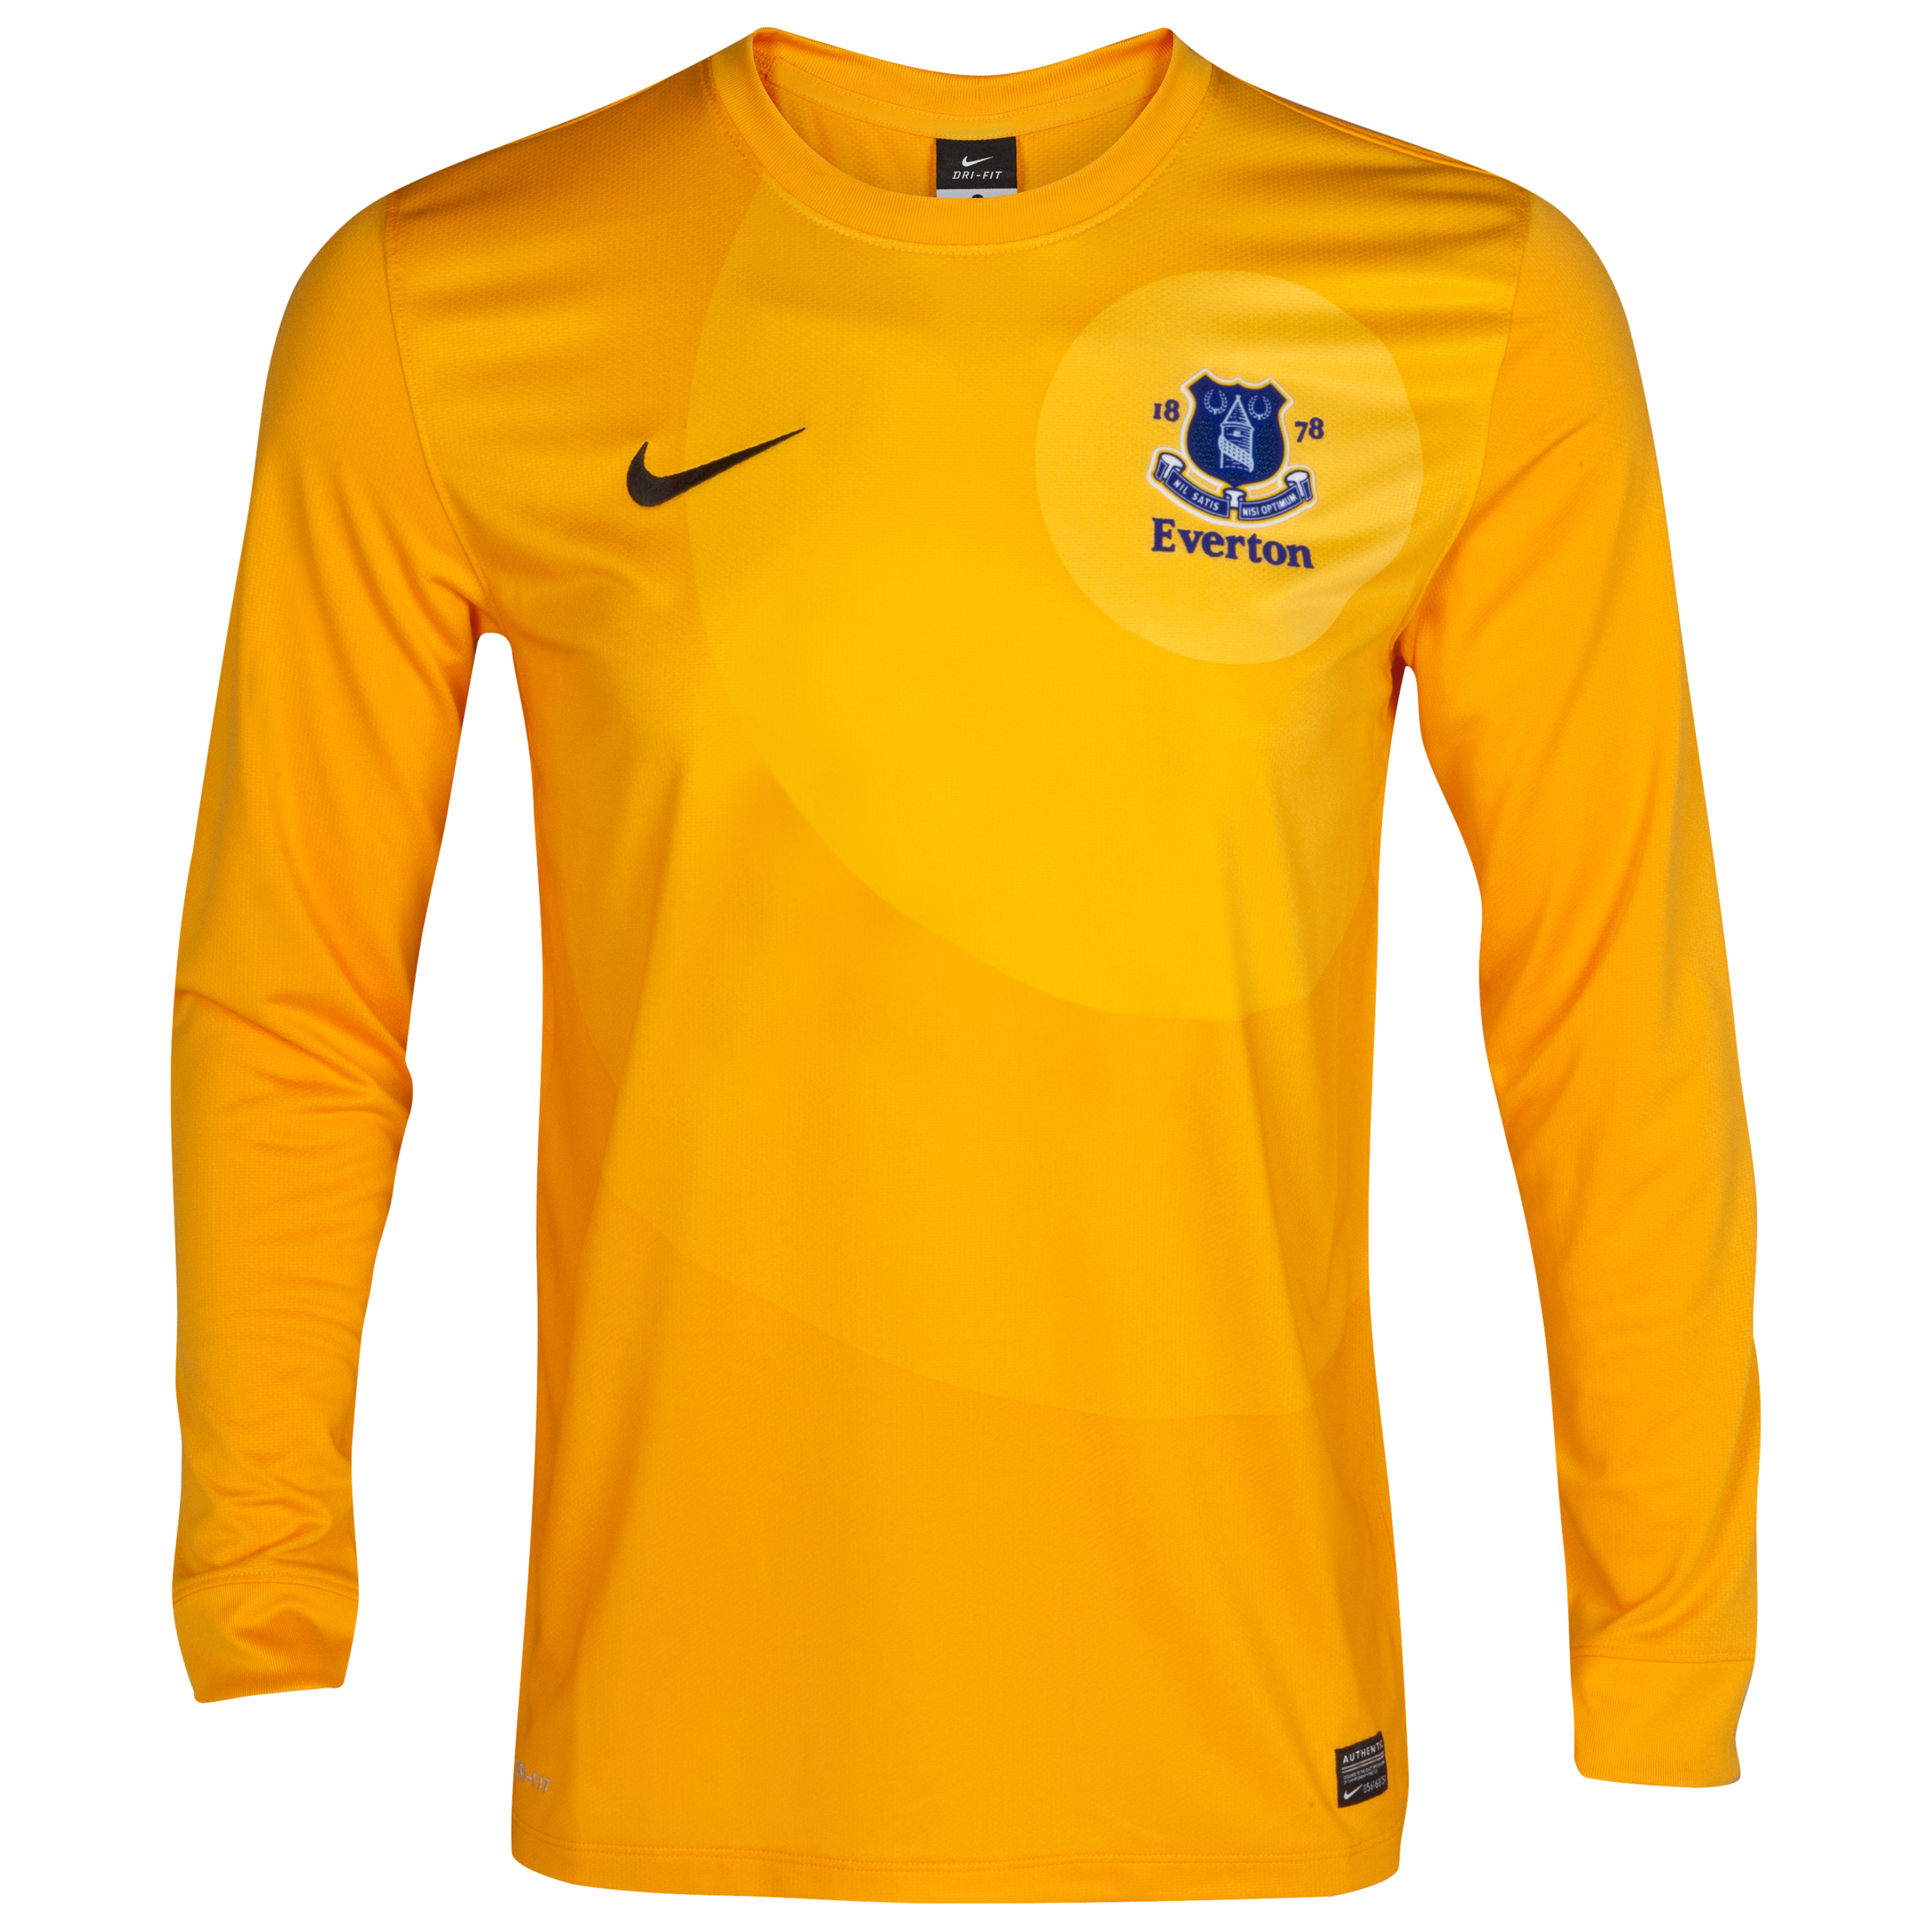 Everton Away Goalkeeper Shirt 2012/13 - Junior